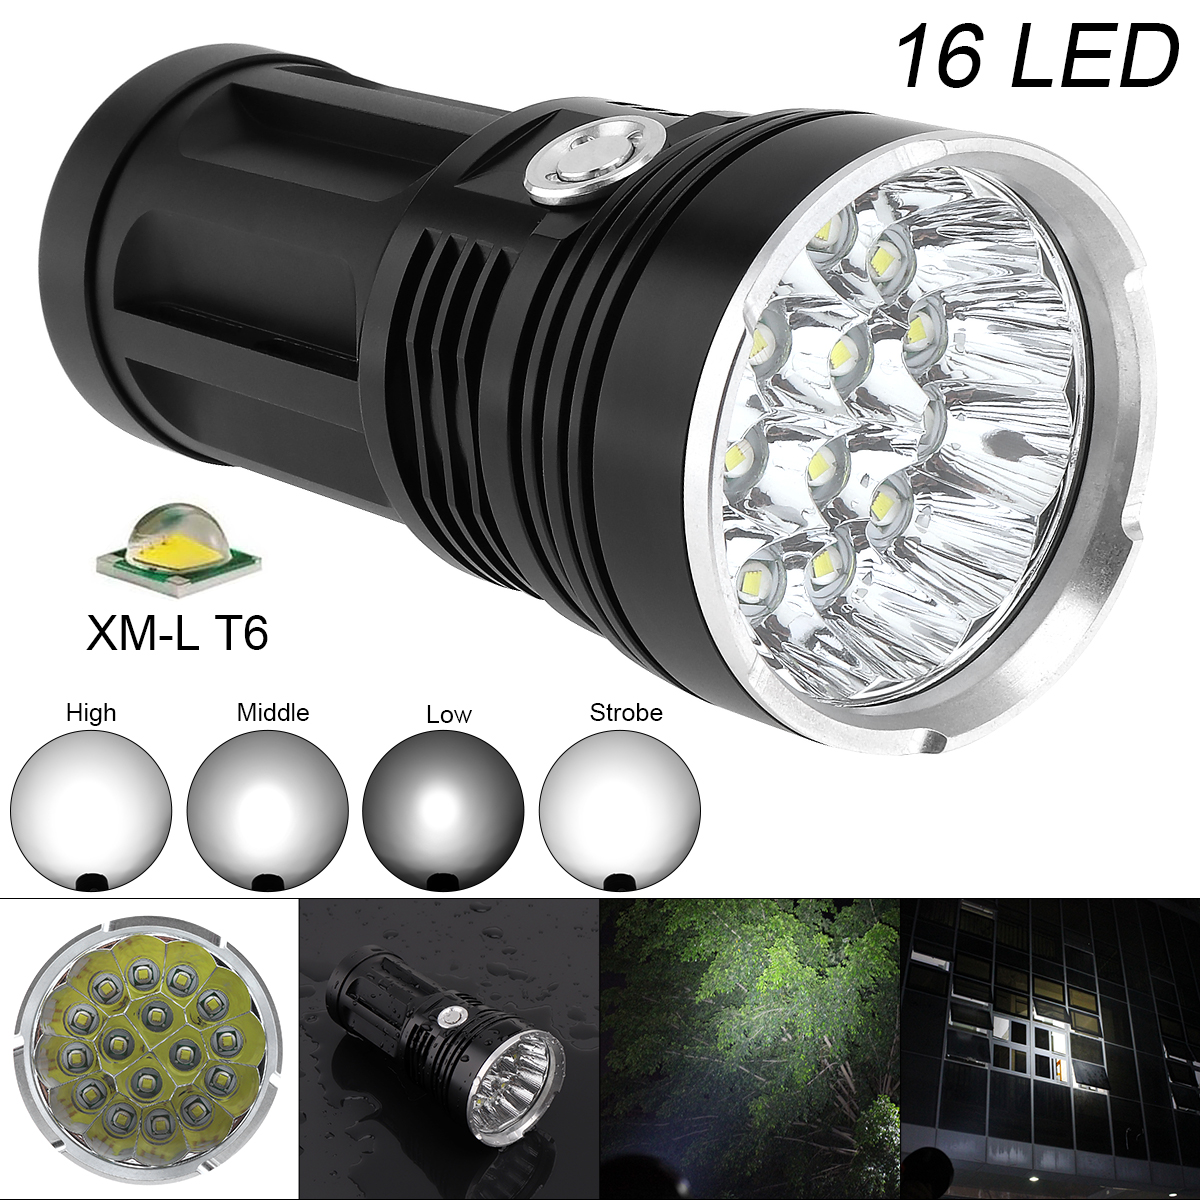 16T6 4800 lumens LED flash light 16*XM-L T6 LED Flashlight Torch Lamp Light For Hunting Camping Use Rechargeable 18650 Battery коммутатор zyxel gs1100 16 gs1100 16 eu0101f